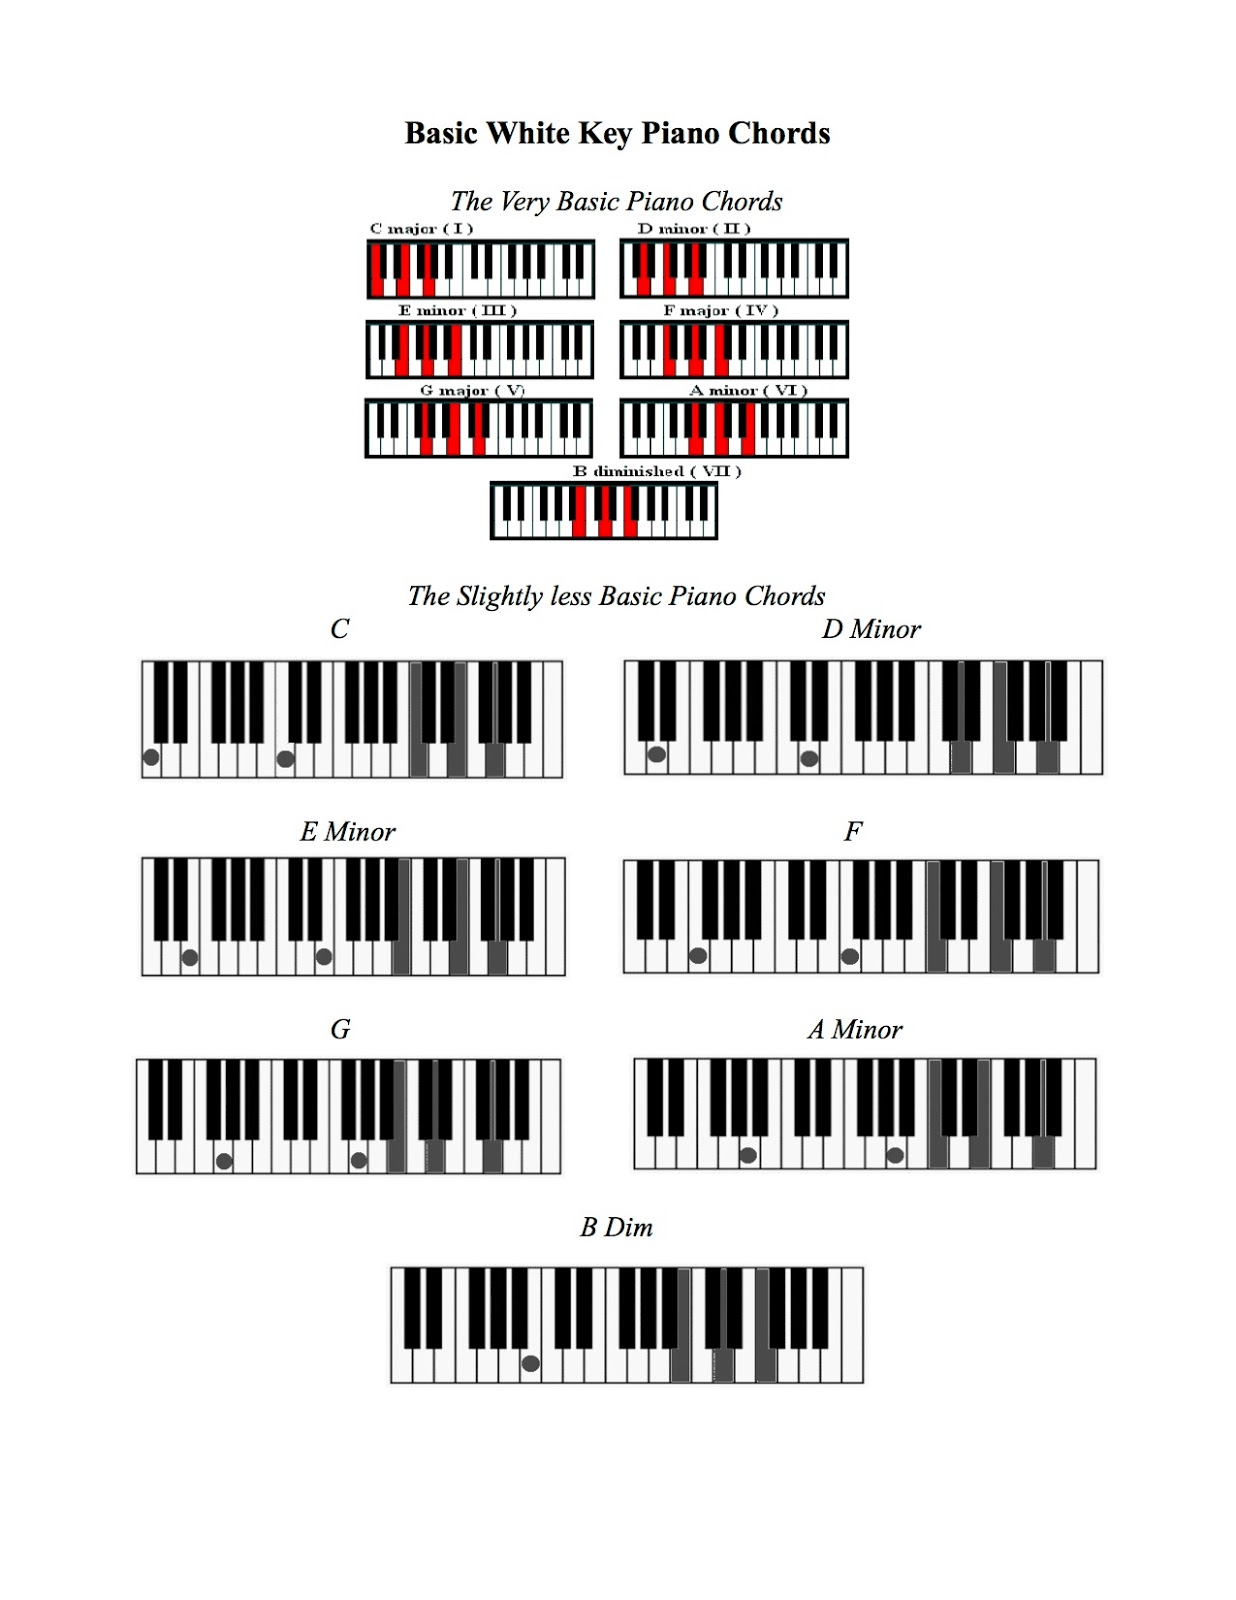 Basic white key piano chords sasic music blog hexwebz Gallery